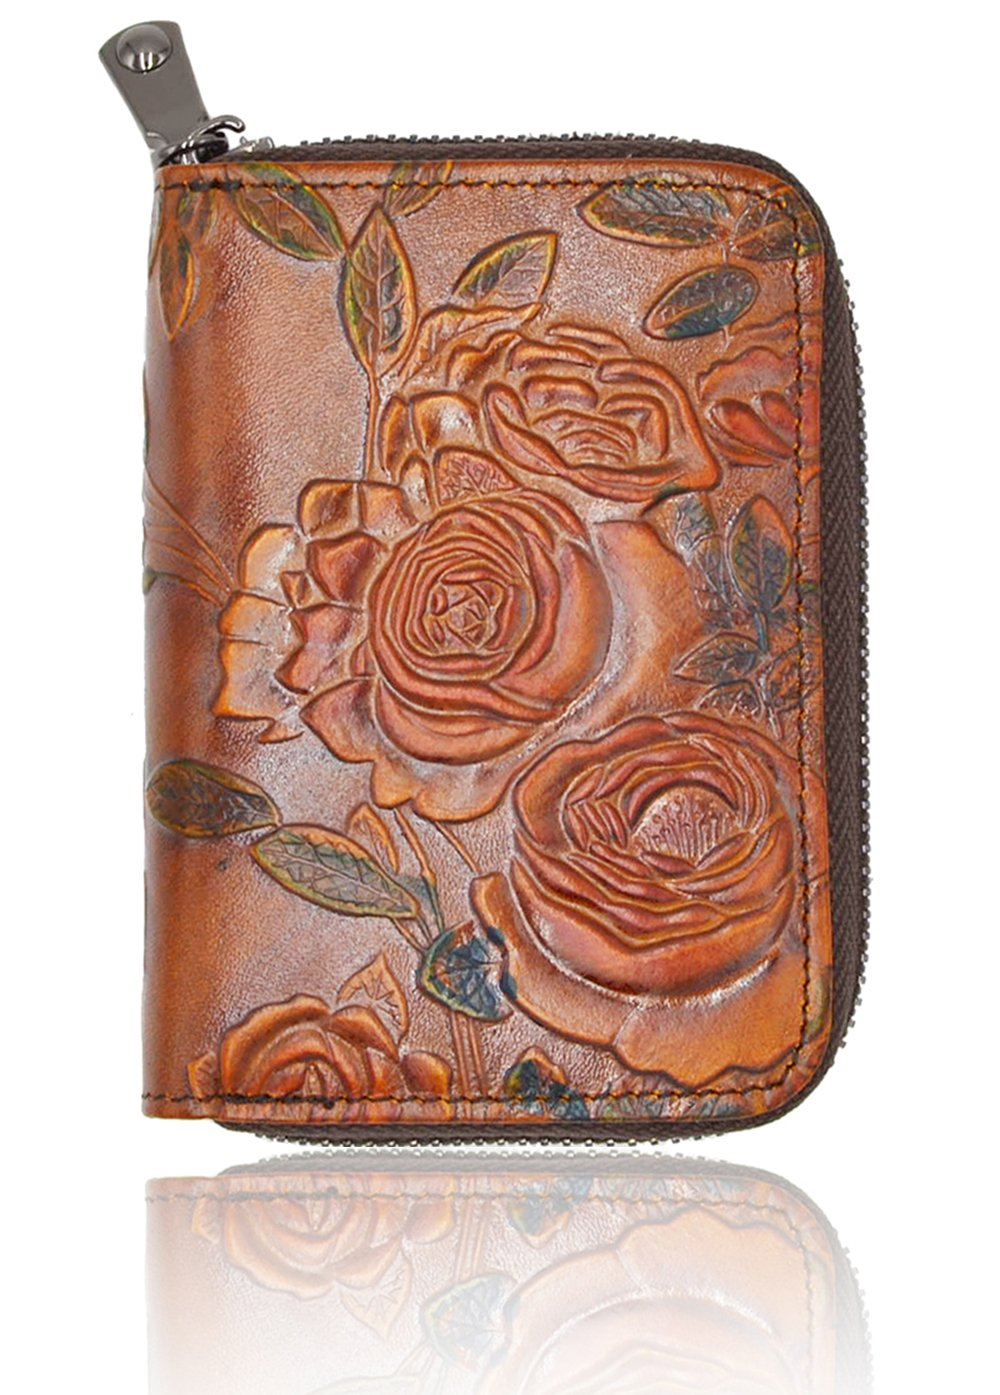 RFID Blocking Credit Card Holder for Women - Leather Zipper Card Case Minimalist Accordion Wallet Hand-Painted Color by Freezx (Image #1)